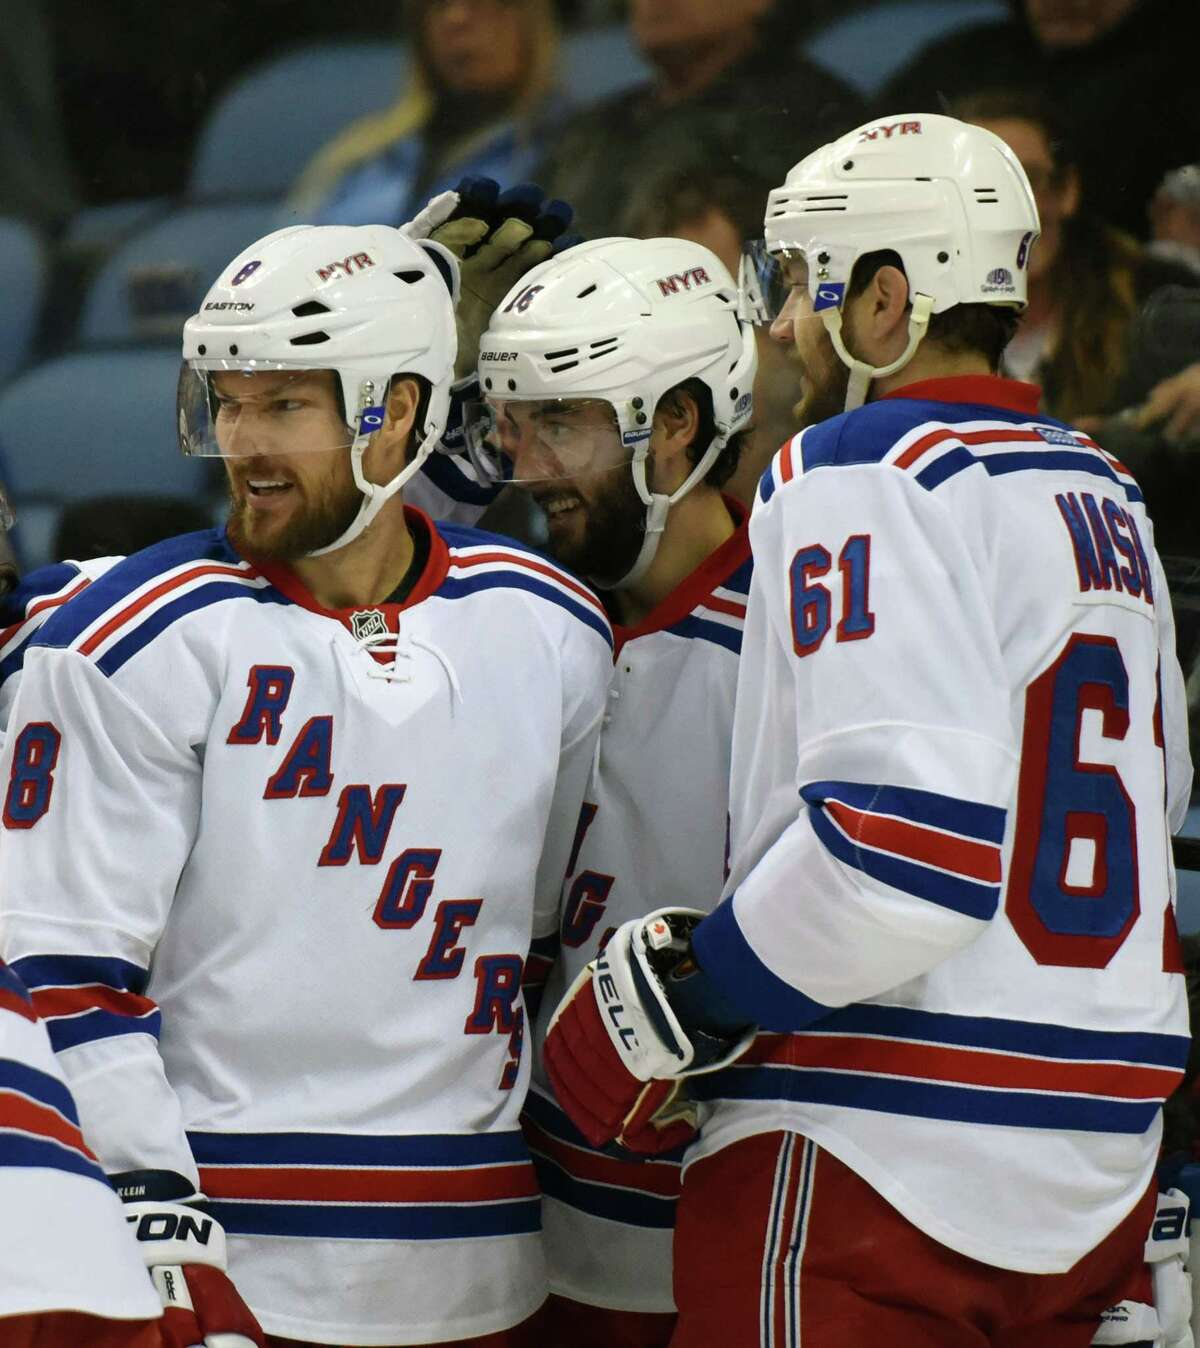 The New York Rangers' Kevin Klein (8), Derick Brassard (16) and Rick Nash (61) celebrate a goal by Nash during the second period of their 3-1 win over the Sabres on Friday night in Buffalo, N.Y.